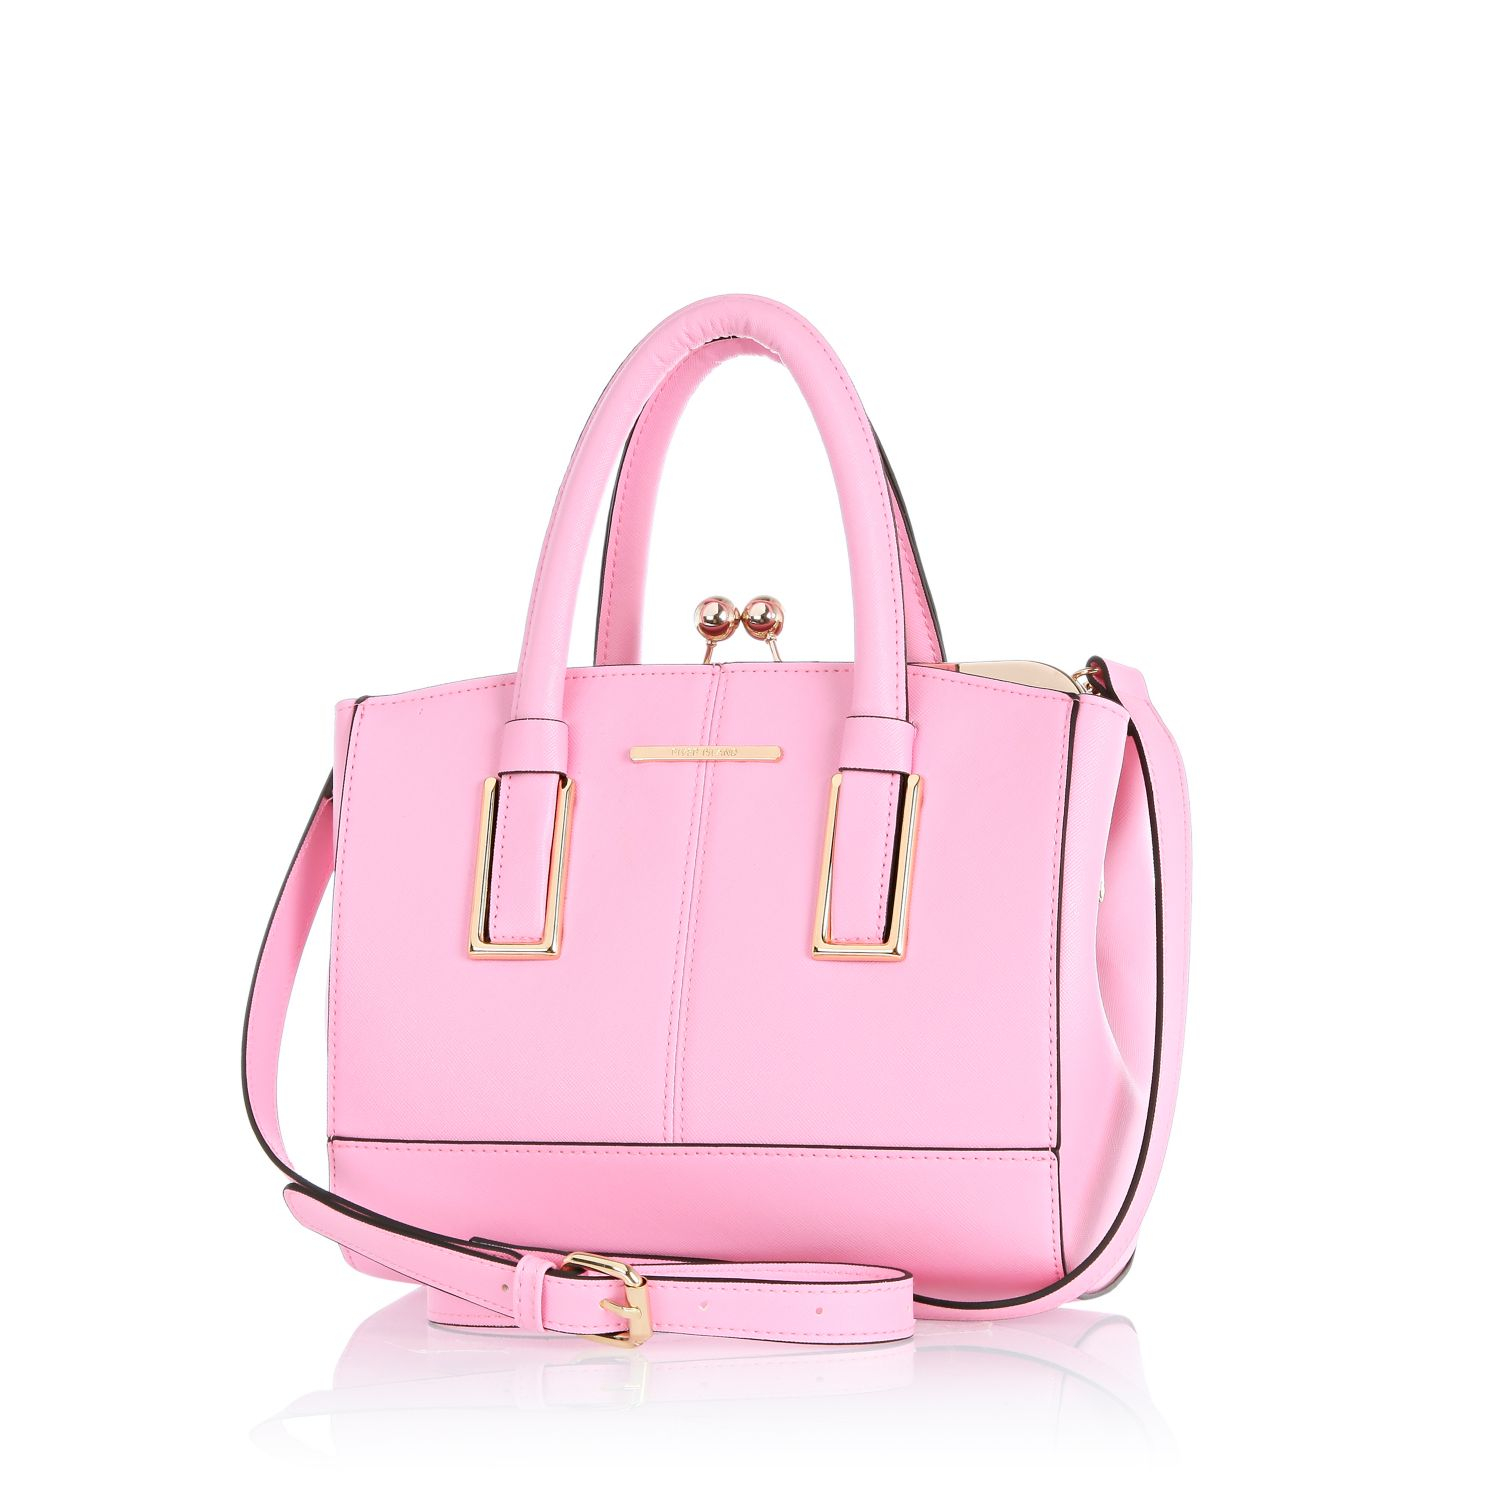 river island light pink mini structured tote bag in pink lyst. Black Bedroom Furniture Sets. Home Design Ideas